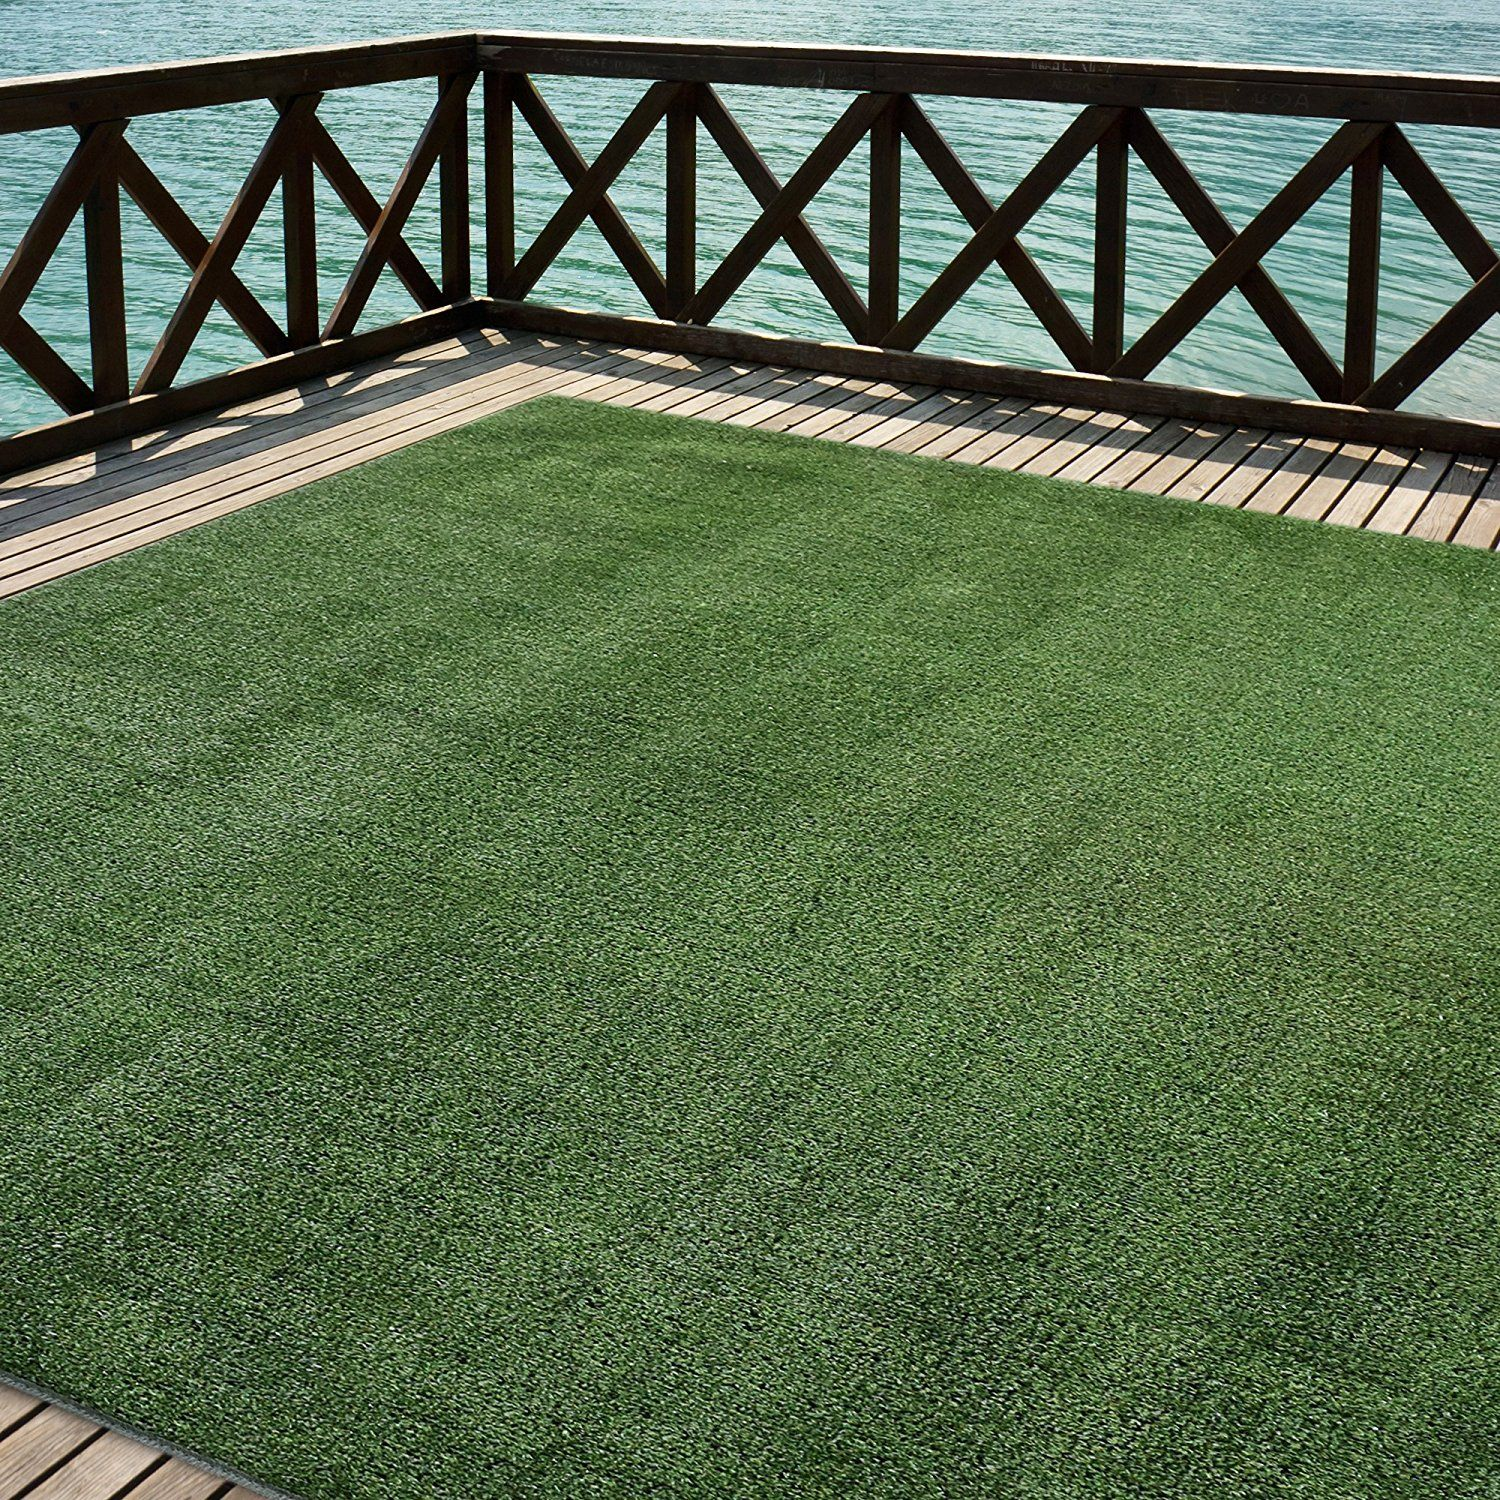 Amazon Com Icustomrug Outdoor Turf Rug In Green Artificial Grass In 6 X 6 And Many Other Kit Best Artificial Grass Artificial Grass Artificial Plants Decor